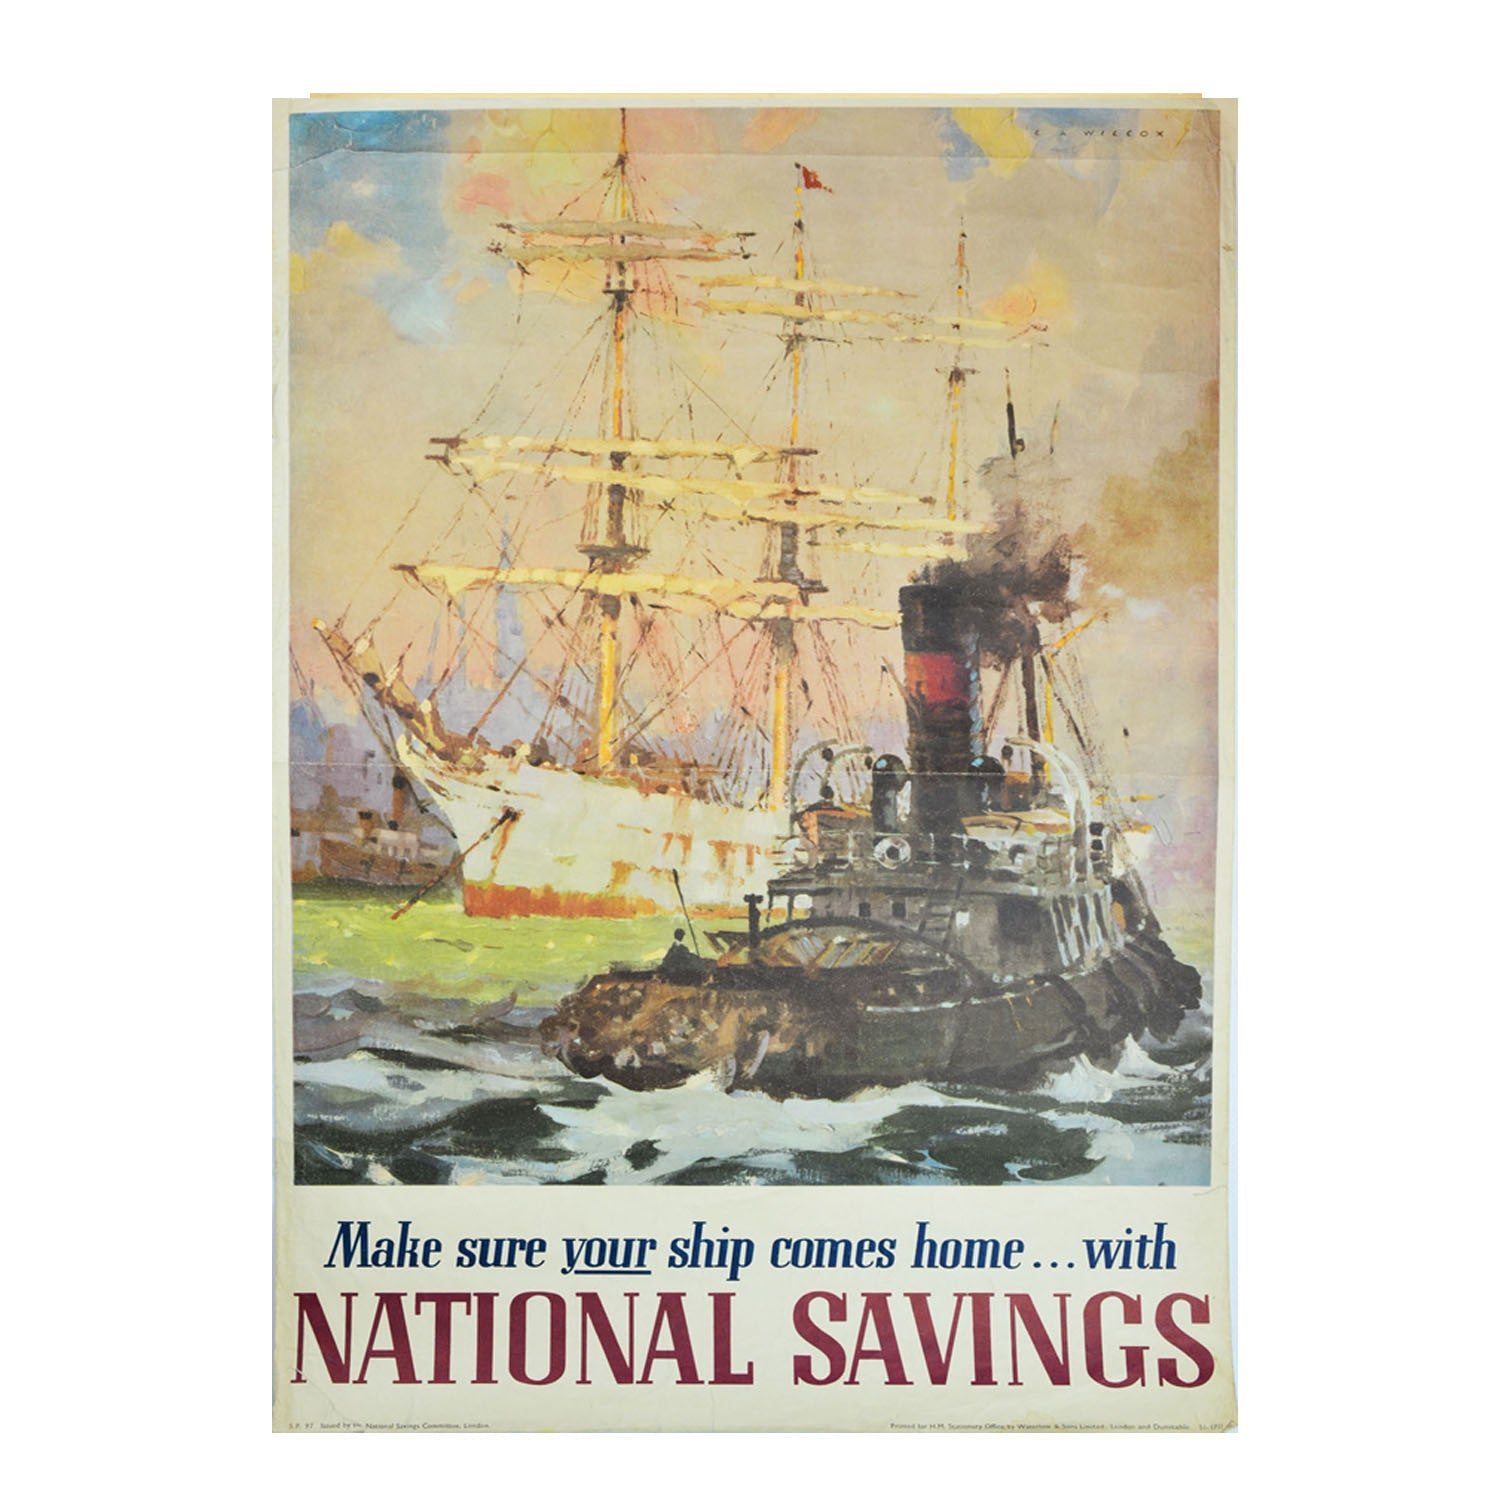 Make sure your ship come home with National Savings